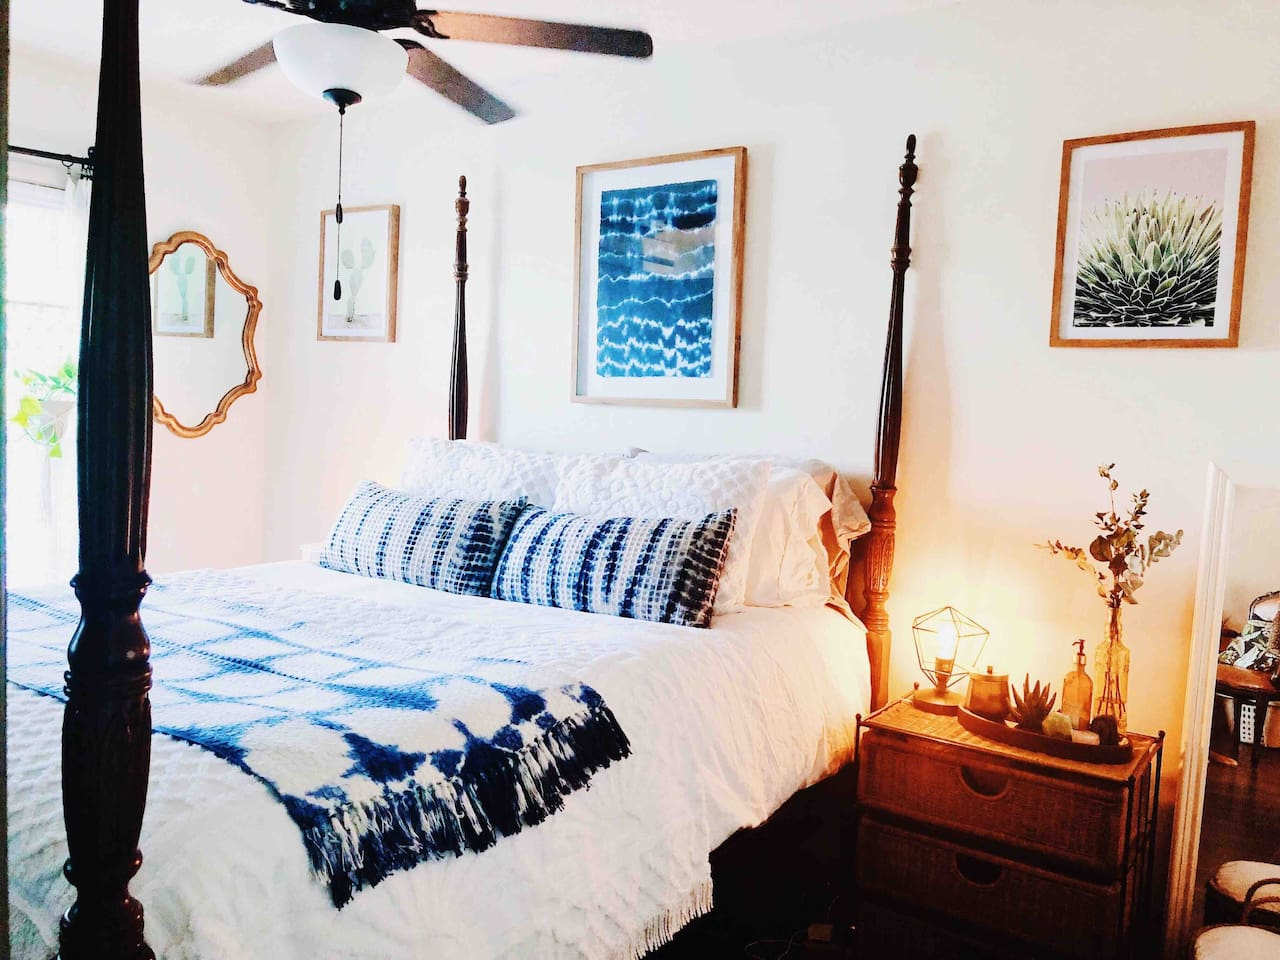 The Classic City Loft: an incredibly relaxing space with plenty of eclectic personality! it will surely be your home away from home.